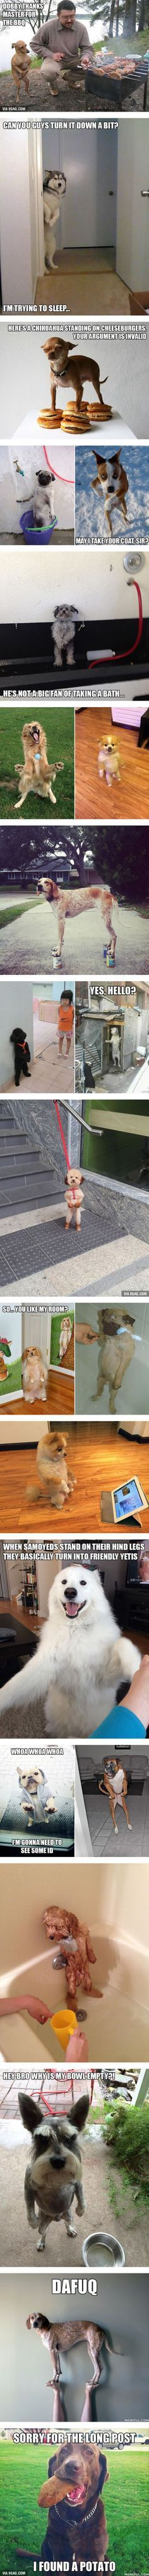 """Awkwardly Standing Dogs Hope you're doing well. From your friends at phoenix dog in home dog training""""k9katelynn"""" see more about Scottsdale dog training at k9katelynn.com! Pinterest with over 20,900 followers! Google plus with over 180,000 views! You tube with over 500 videos and 60,000 views!! LinkedIn over 9,300 associates! Proudly Serving the valley for 11 plus years! Now join us on instant gram! K9katelynn"""